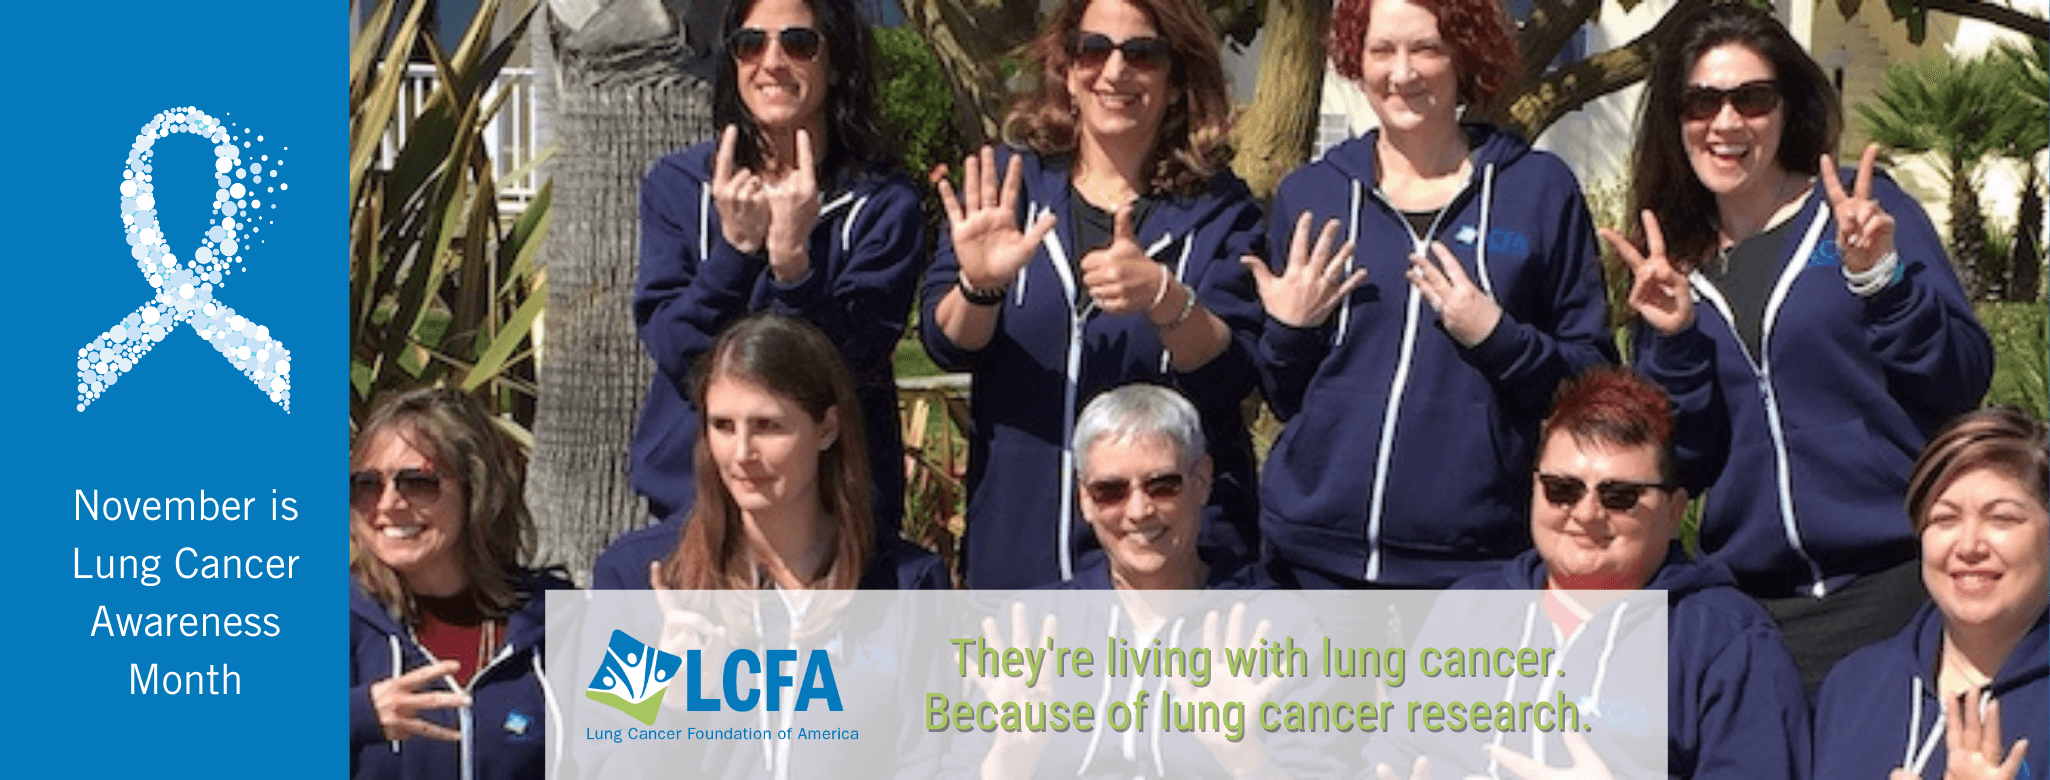 Photo of LCFA speakers bureau who are living with lung cancer.